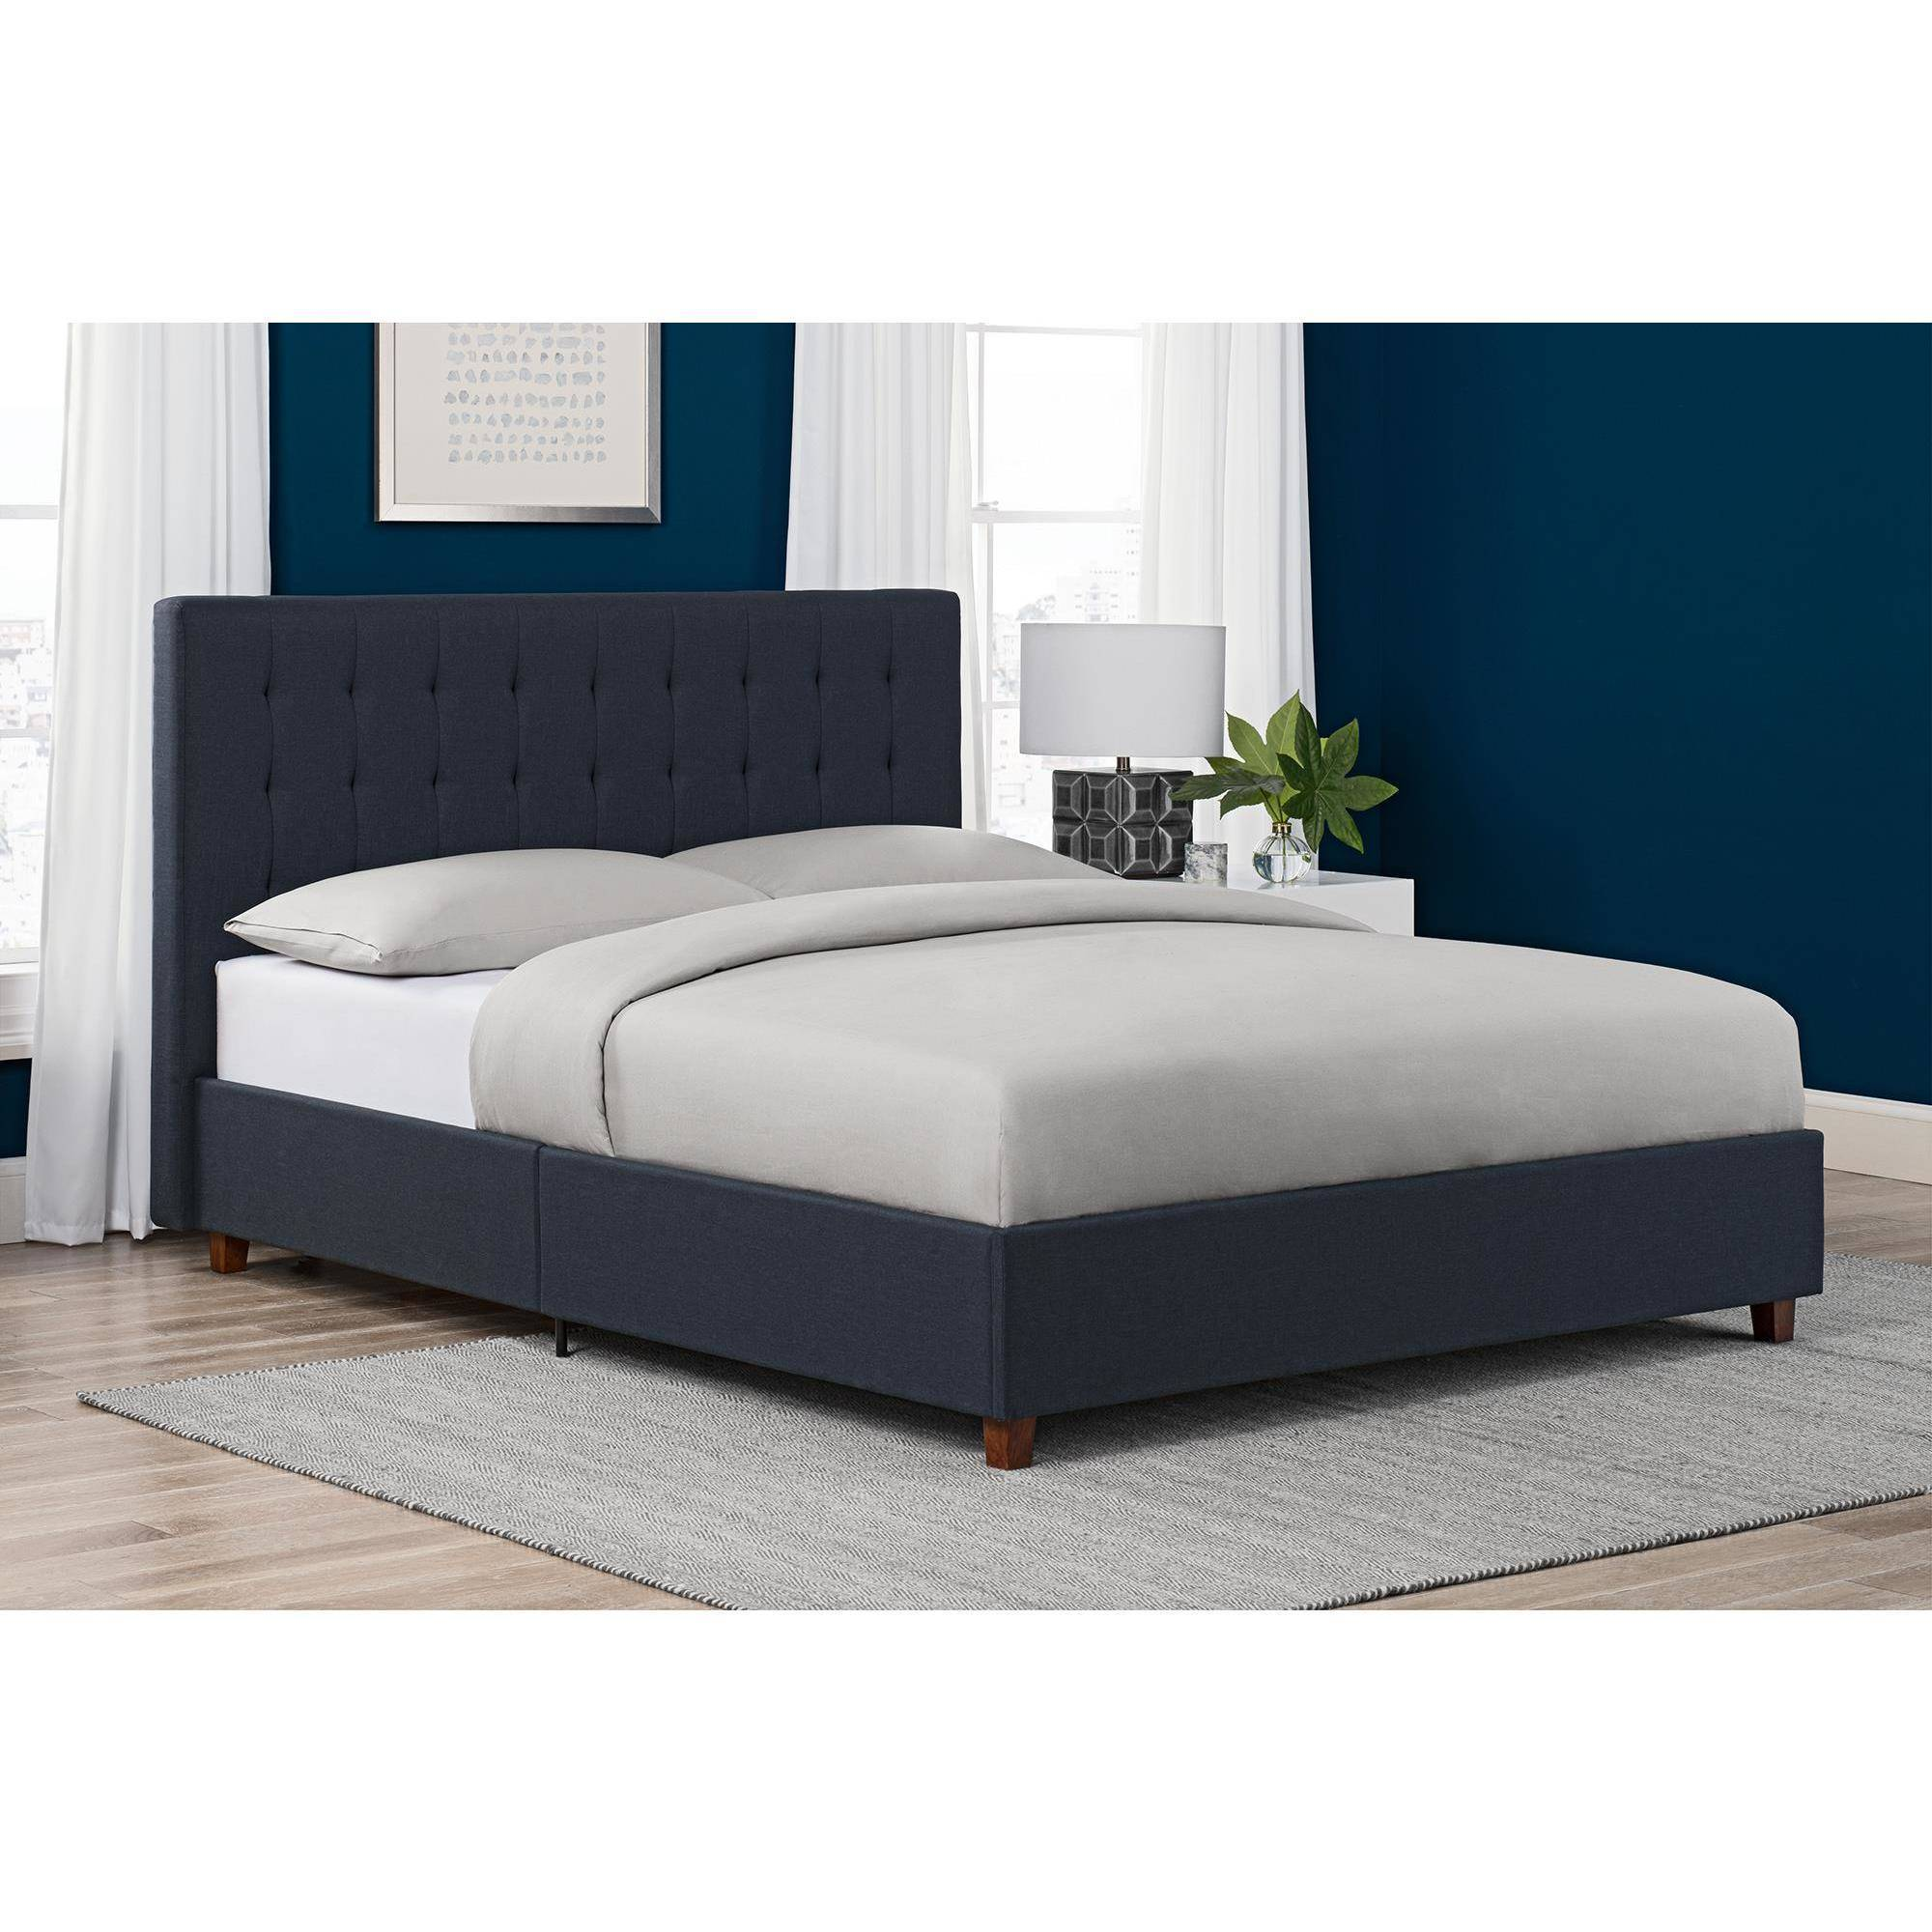 DHP Emily Upholstered Linen Platform Bed with Wooden Slat Support, Tufted Headboard, Multiple Sizes and Colors